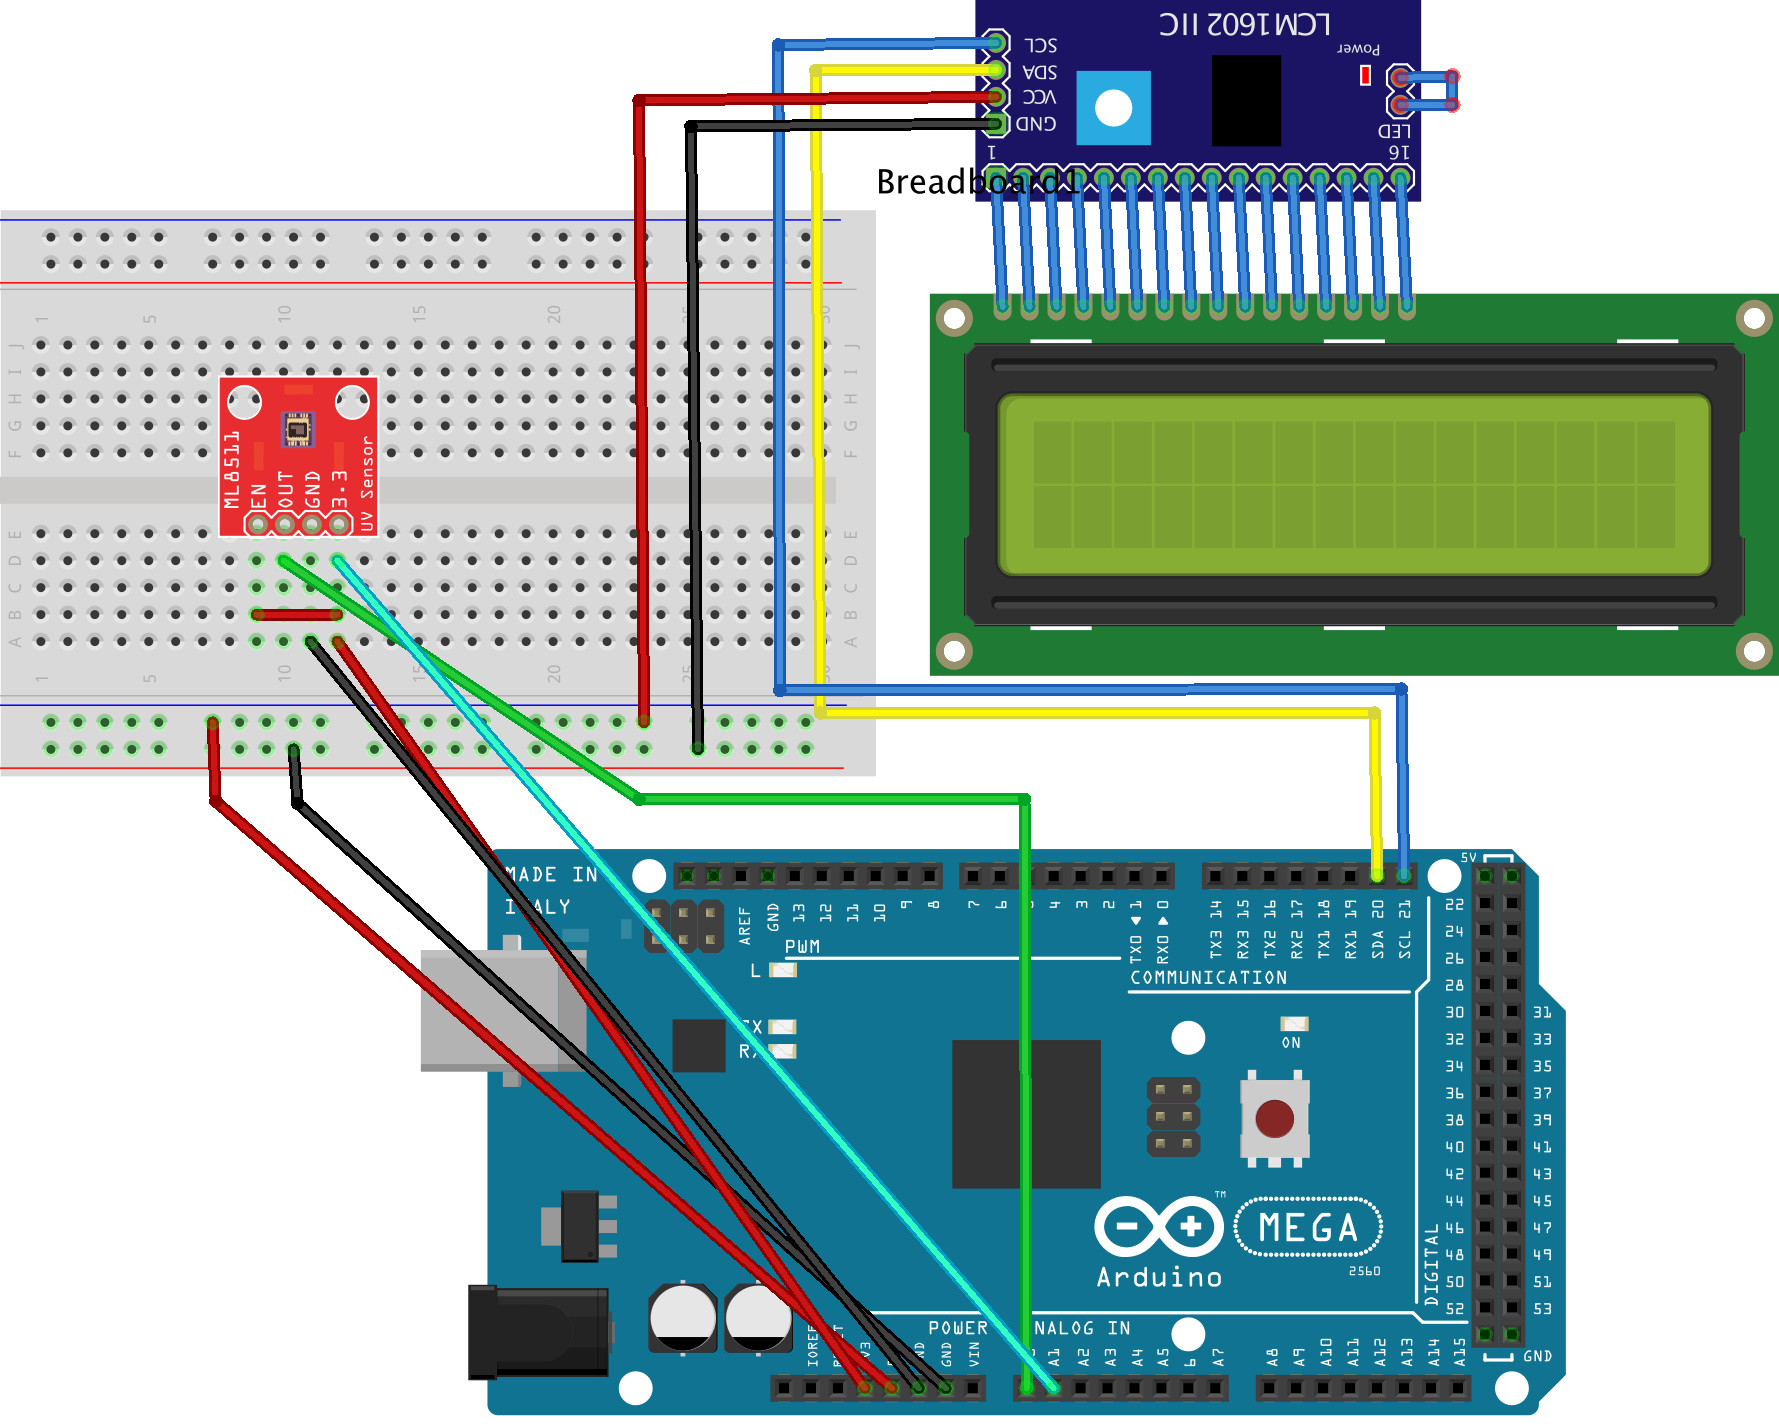 ACTIVITY 15 - LCD DISPLAY AND UV SENSOR - Internet of Things (IoT)